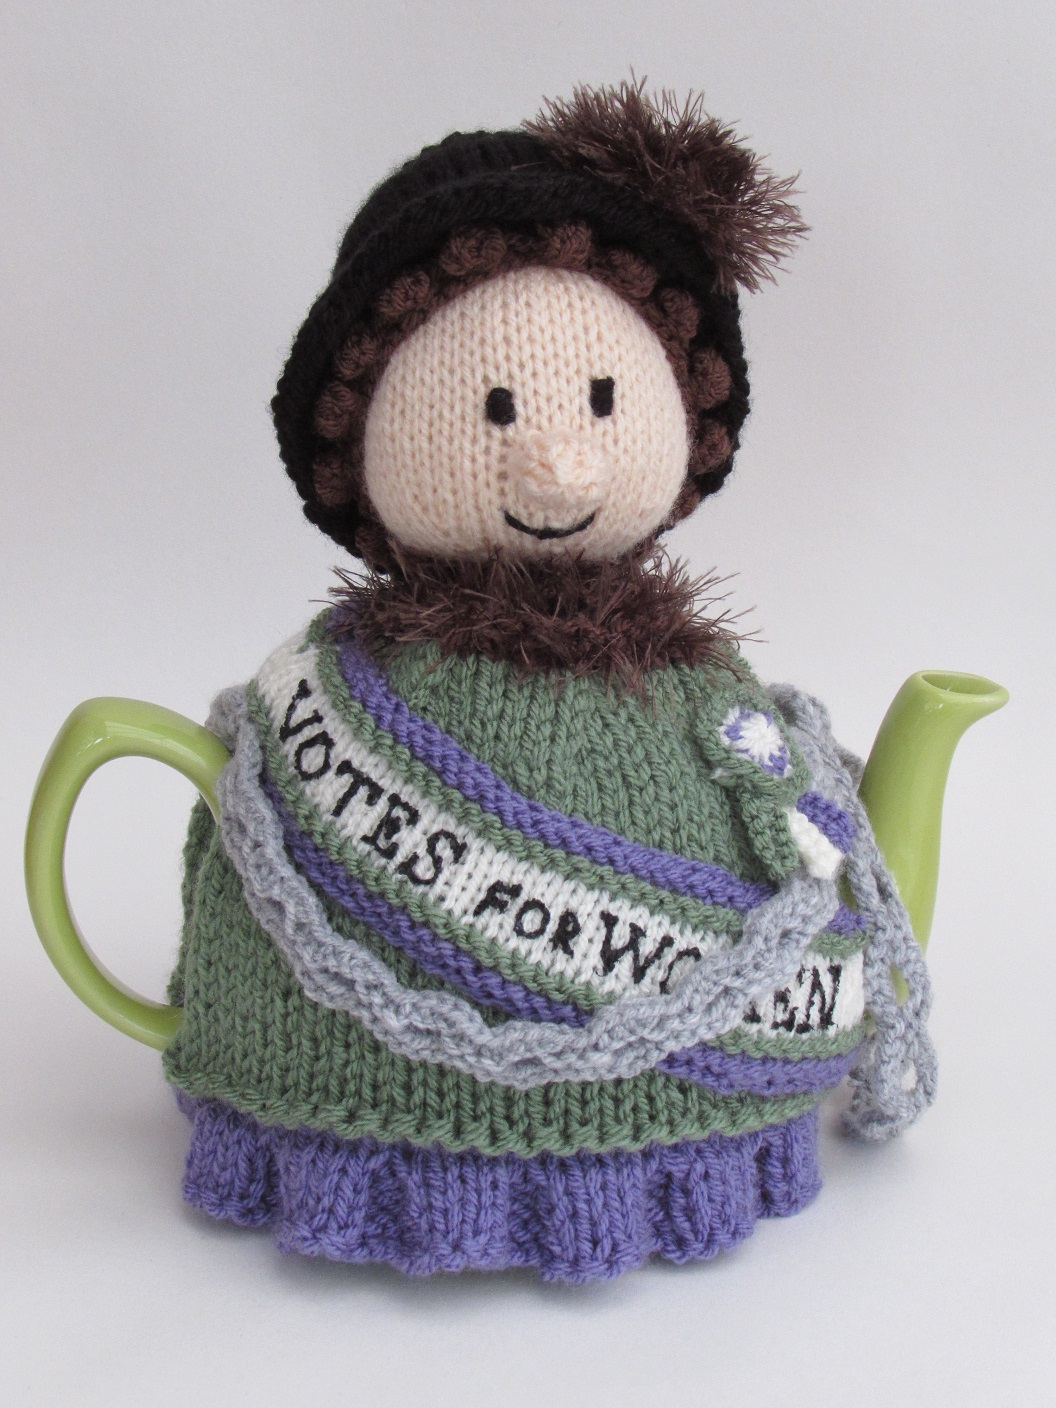 Tea cosy knitting patterns from tea cosy folk learn how to knit our suffragette tea cosy dt1010fo